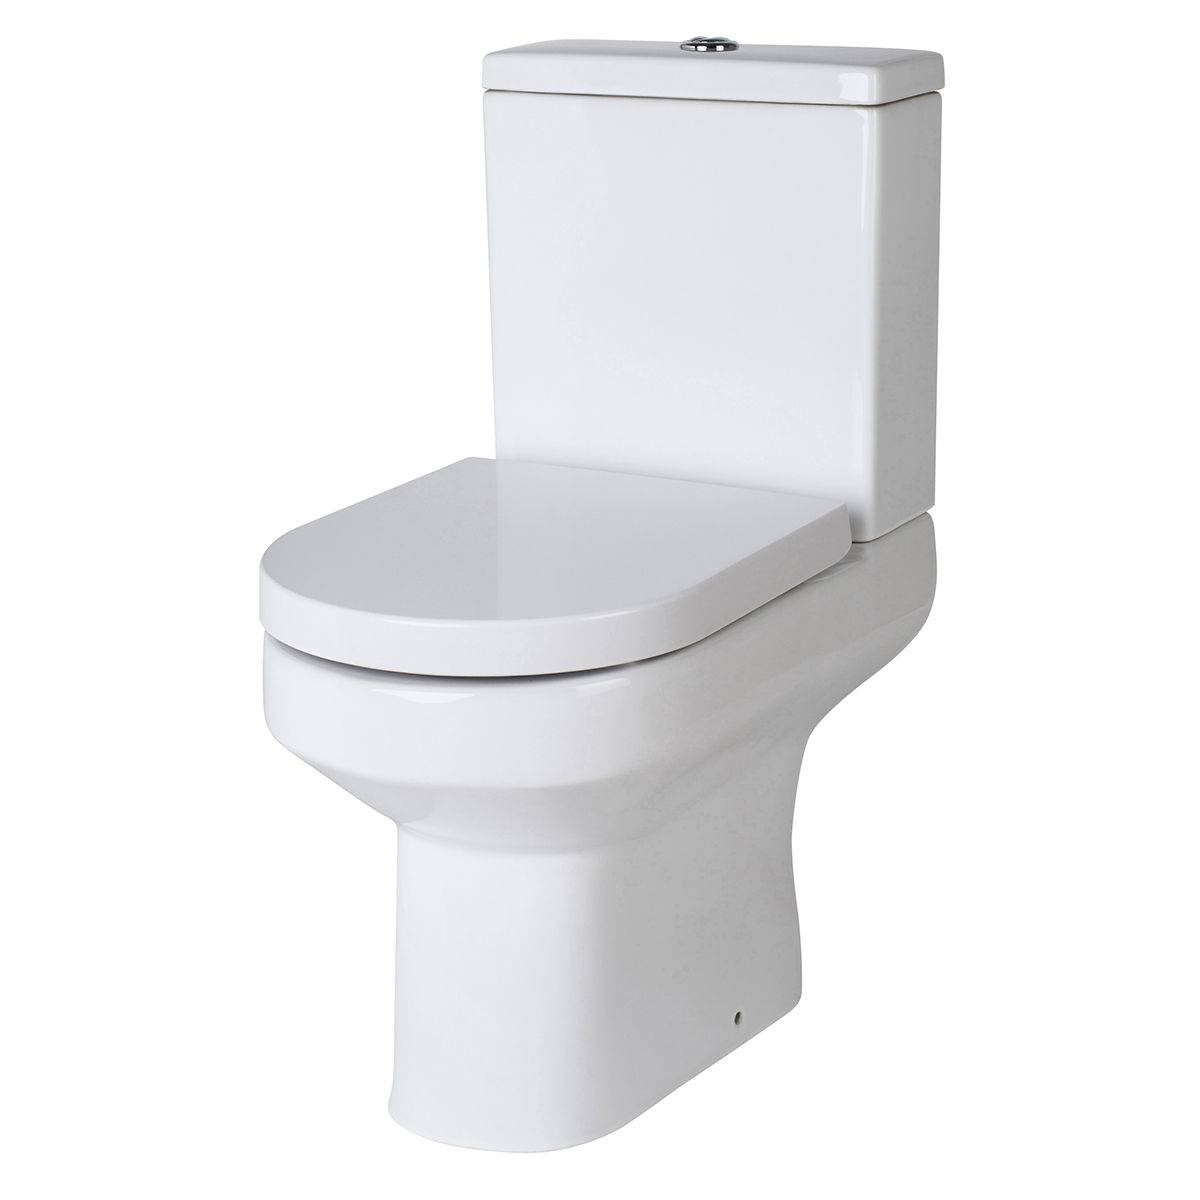 Nuie Harmony Close Coupled Pan with Cistern and Soft Close Seat